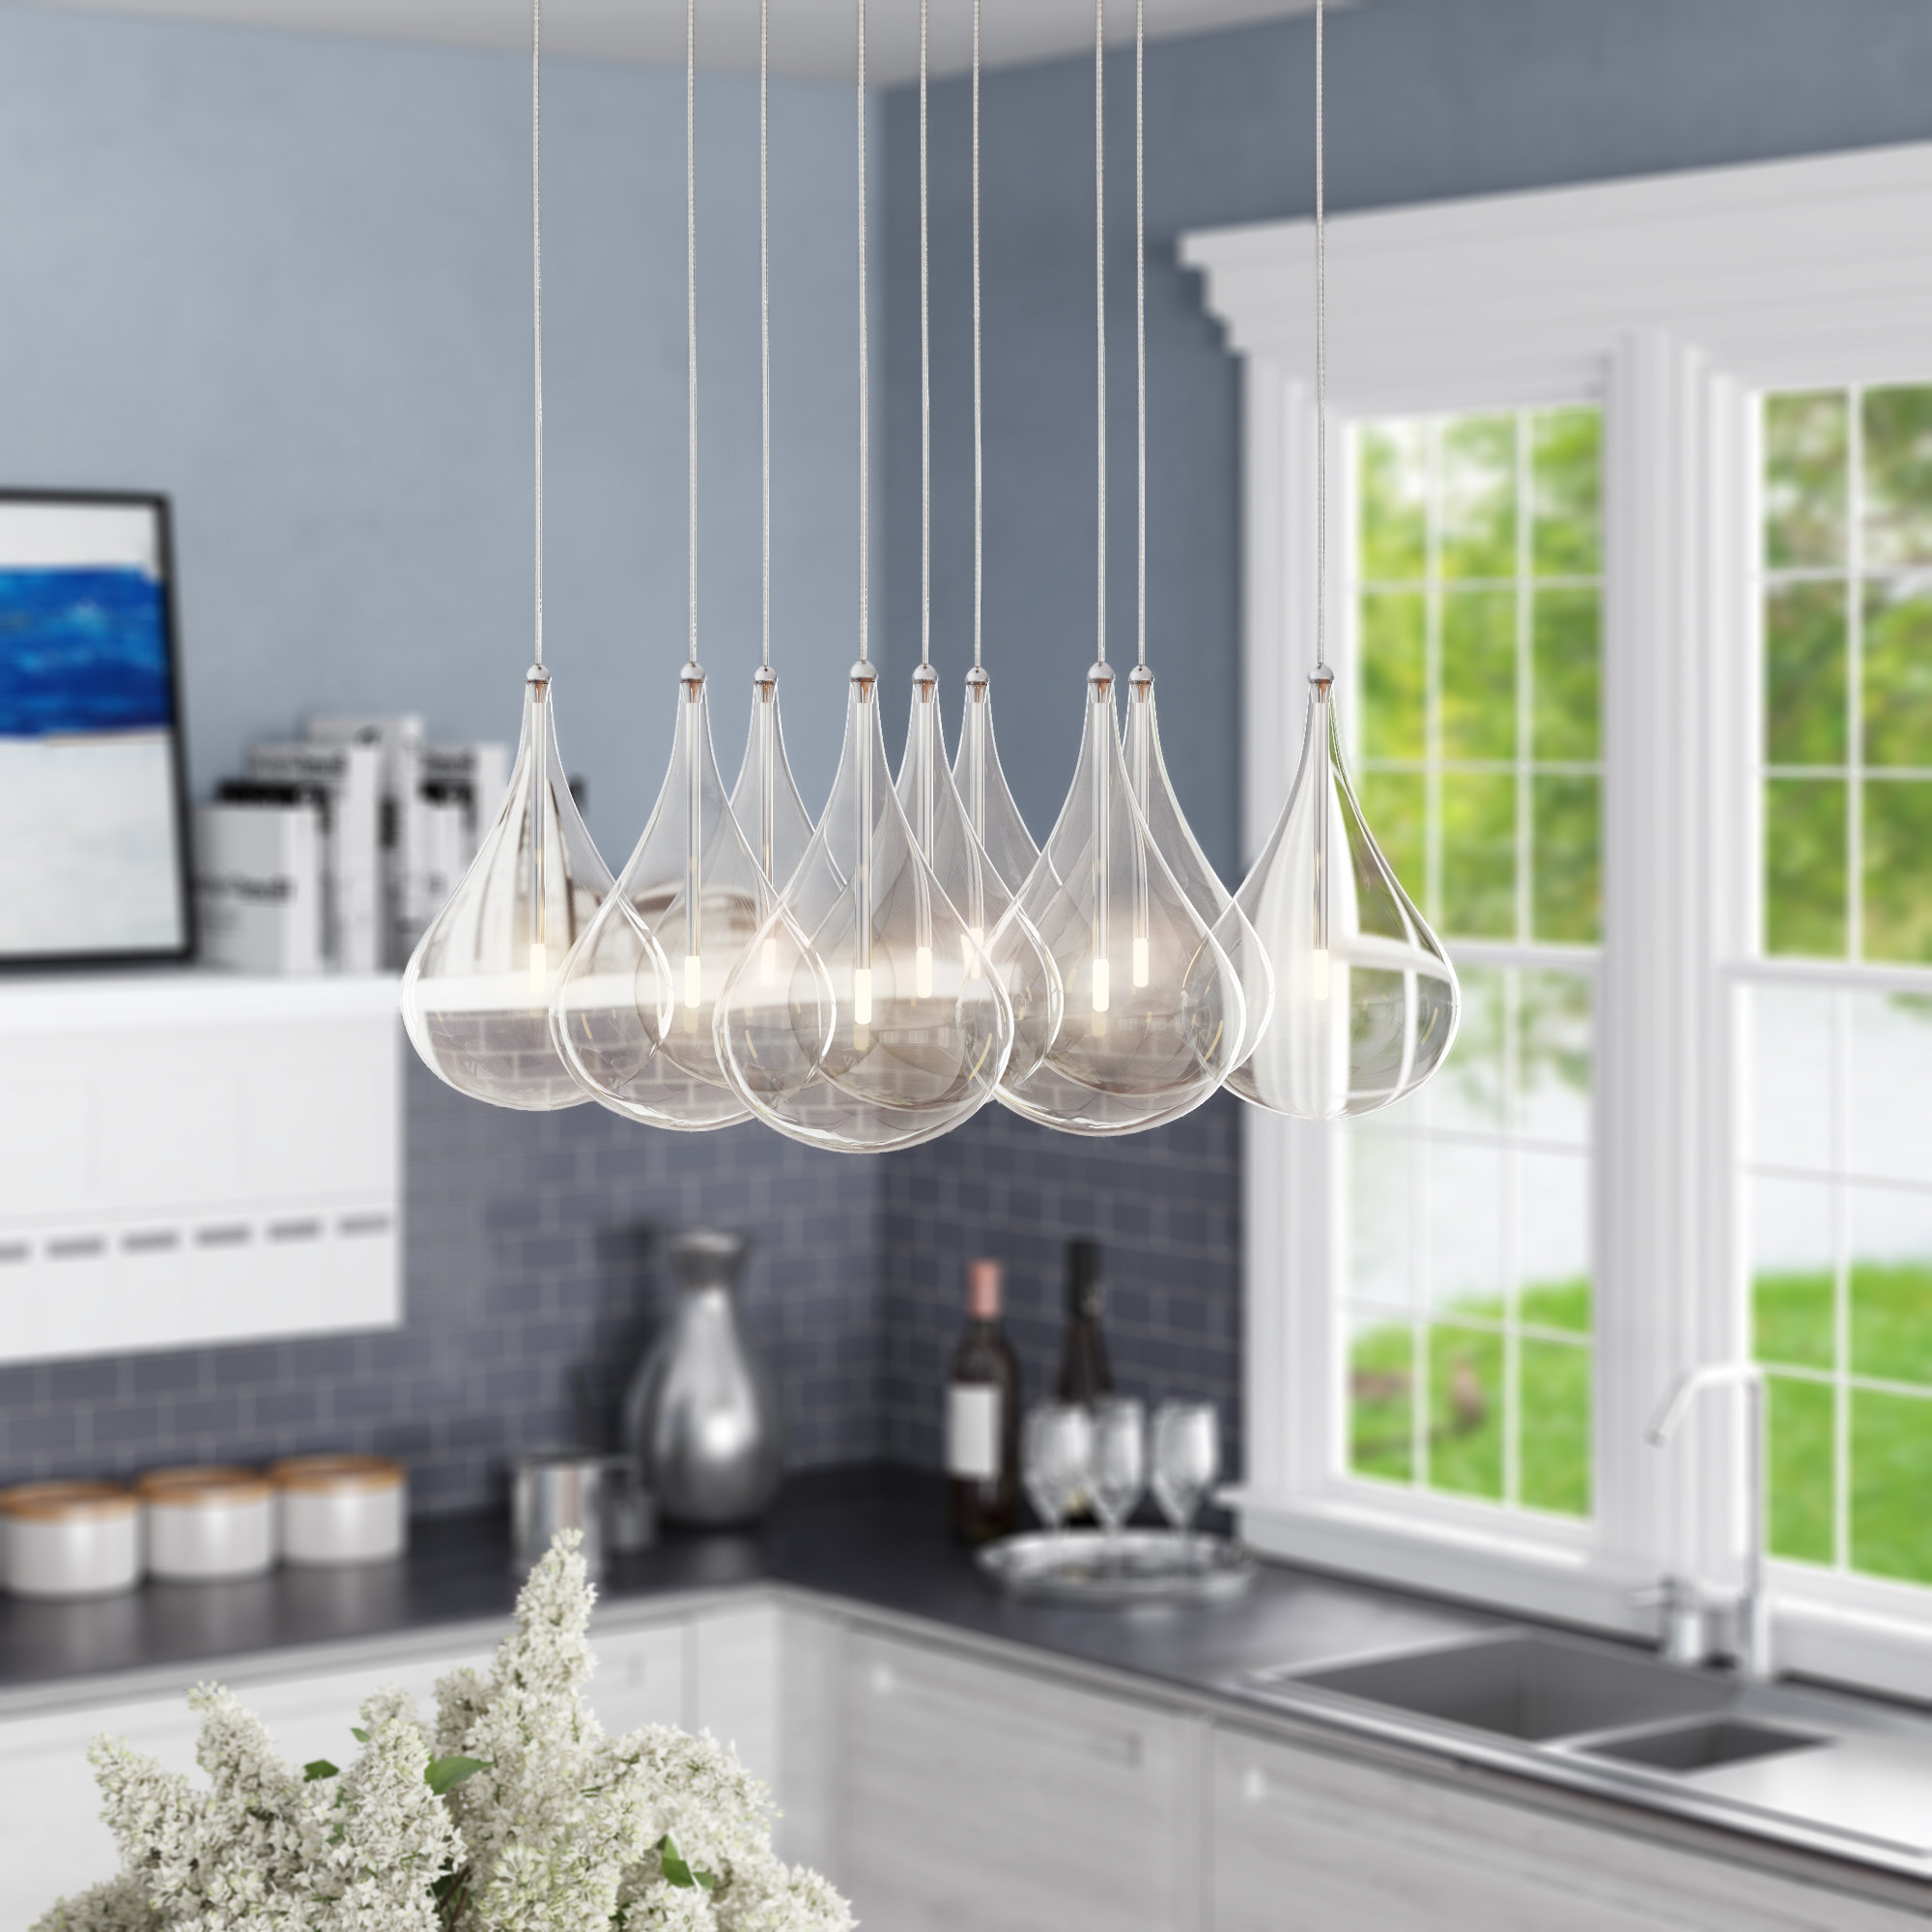 Popular Neal 9 Light Kitchen Island Teardrop Pendants In Neal 9 Light Kitchen Island Pendant (View 15 of 20)